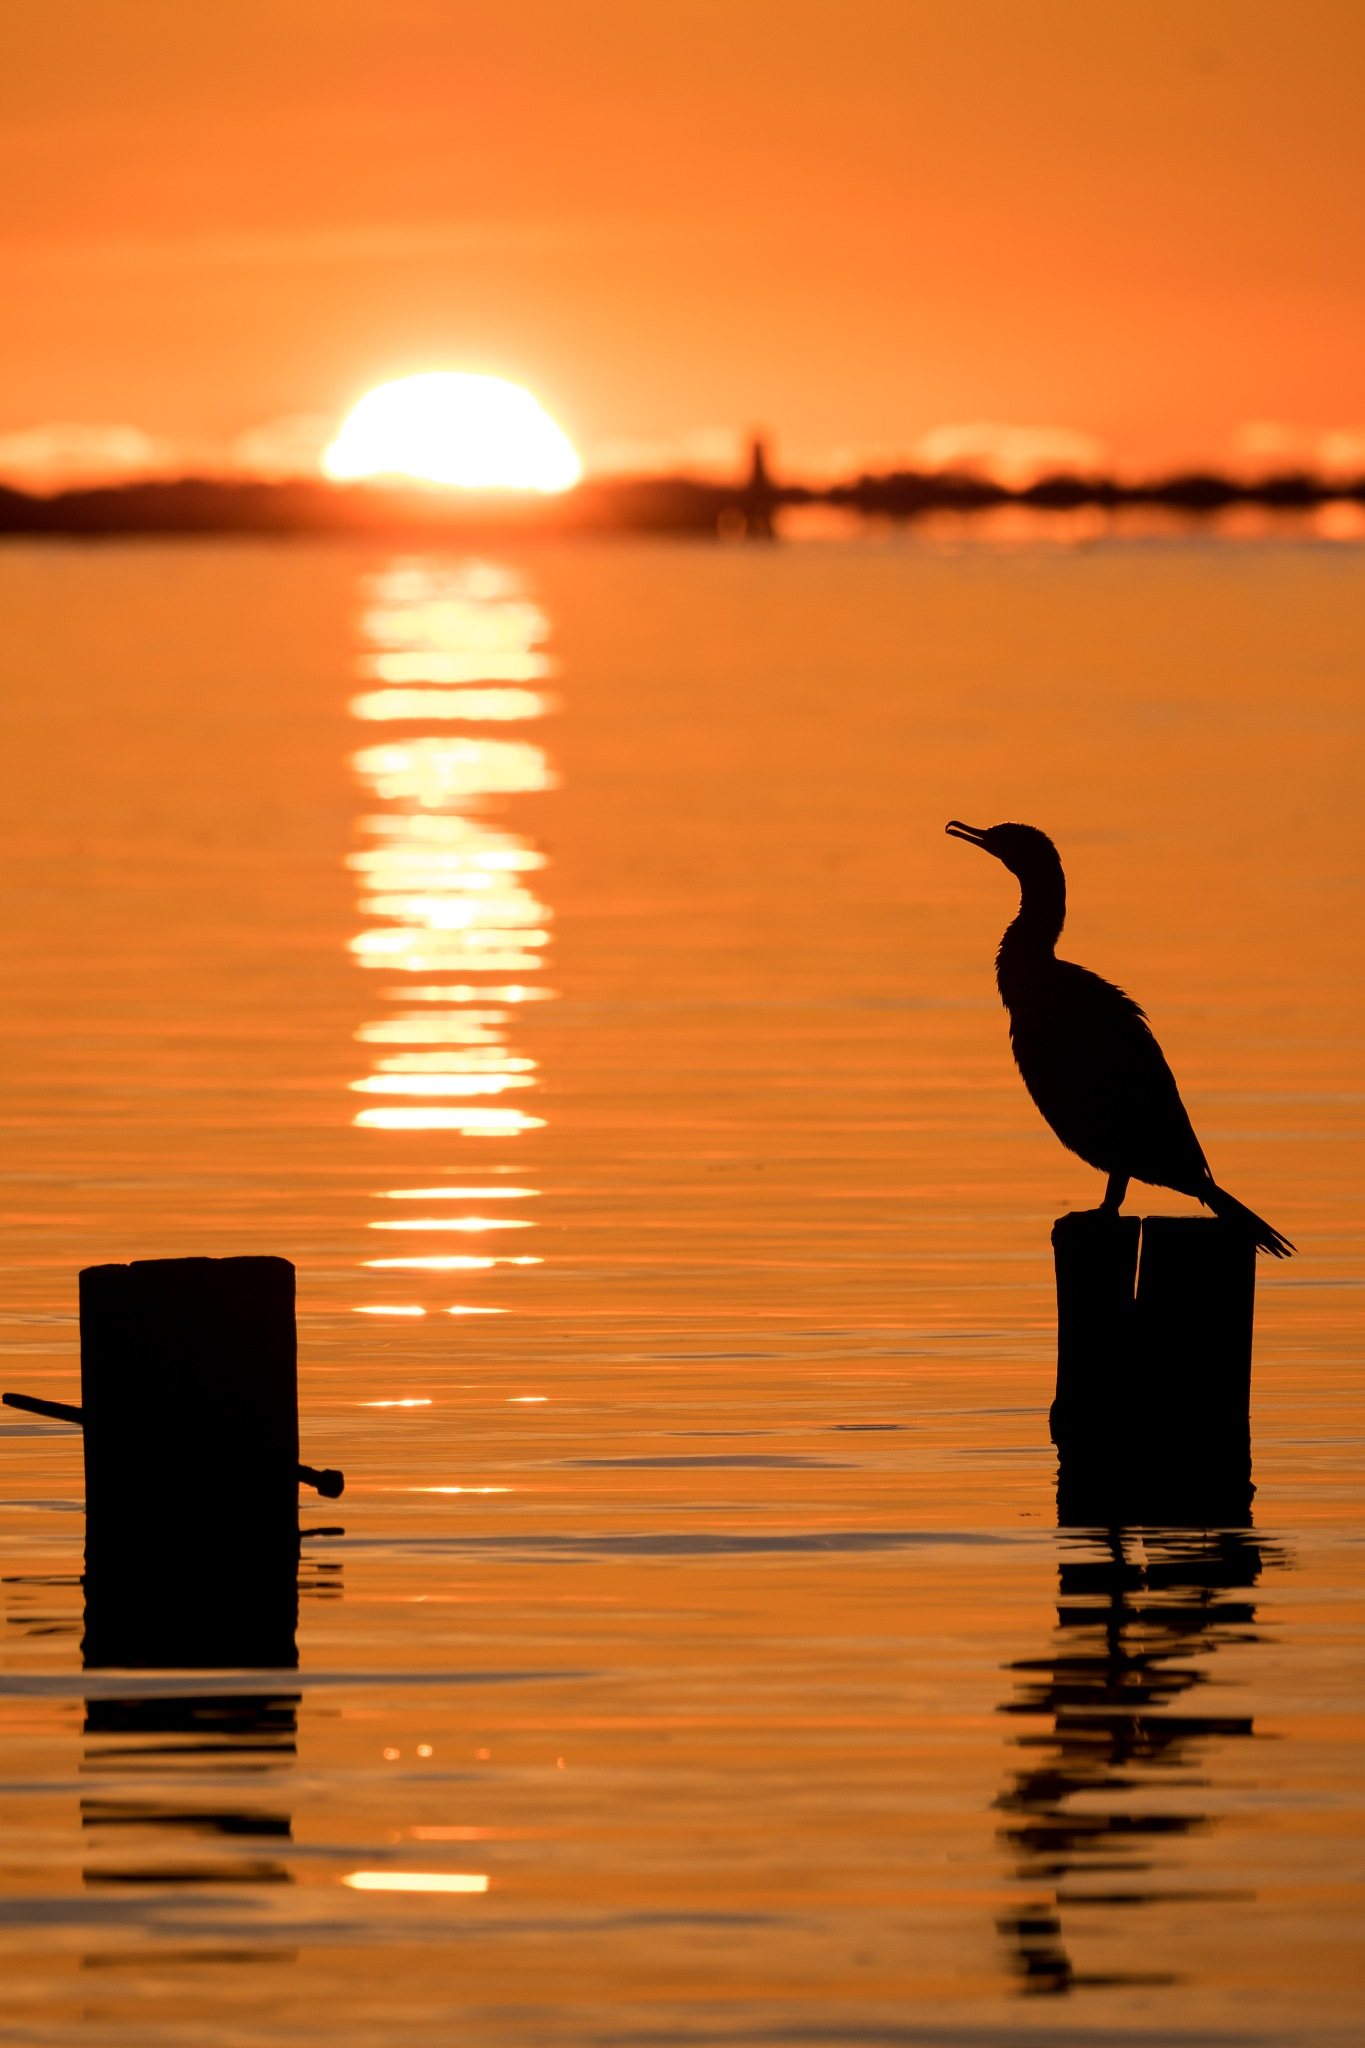 The Early Bird by Dominick Chiuchiolo